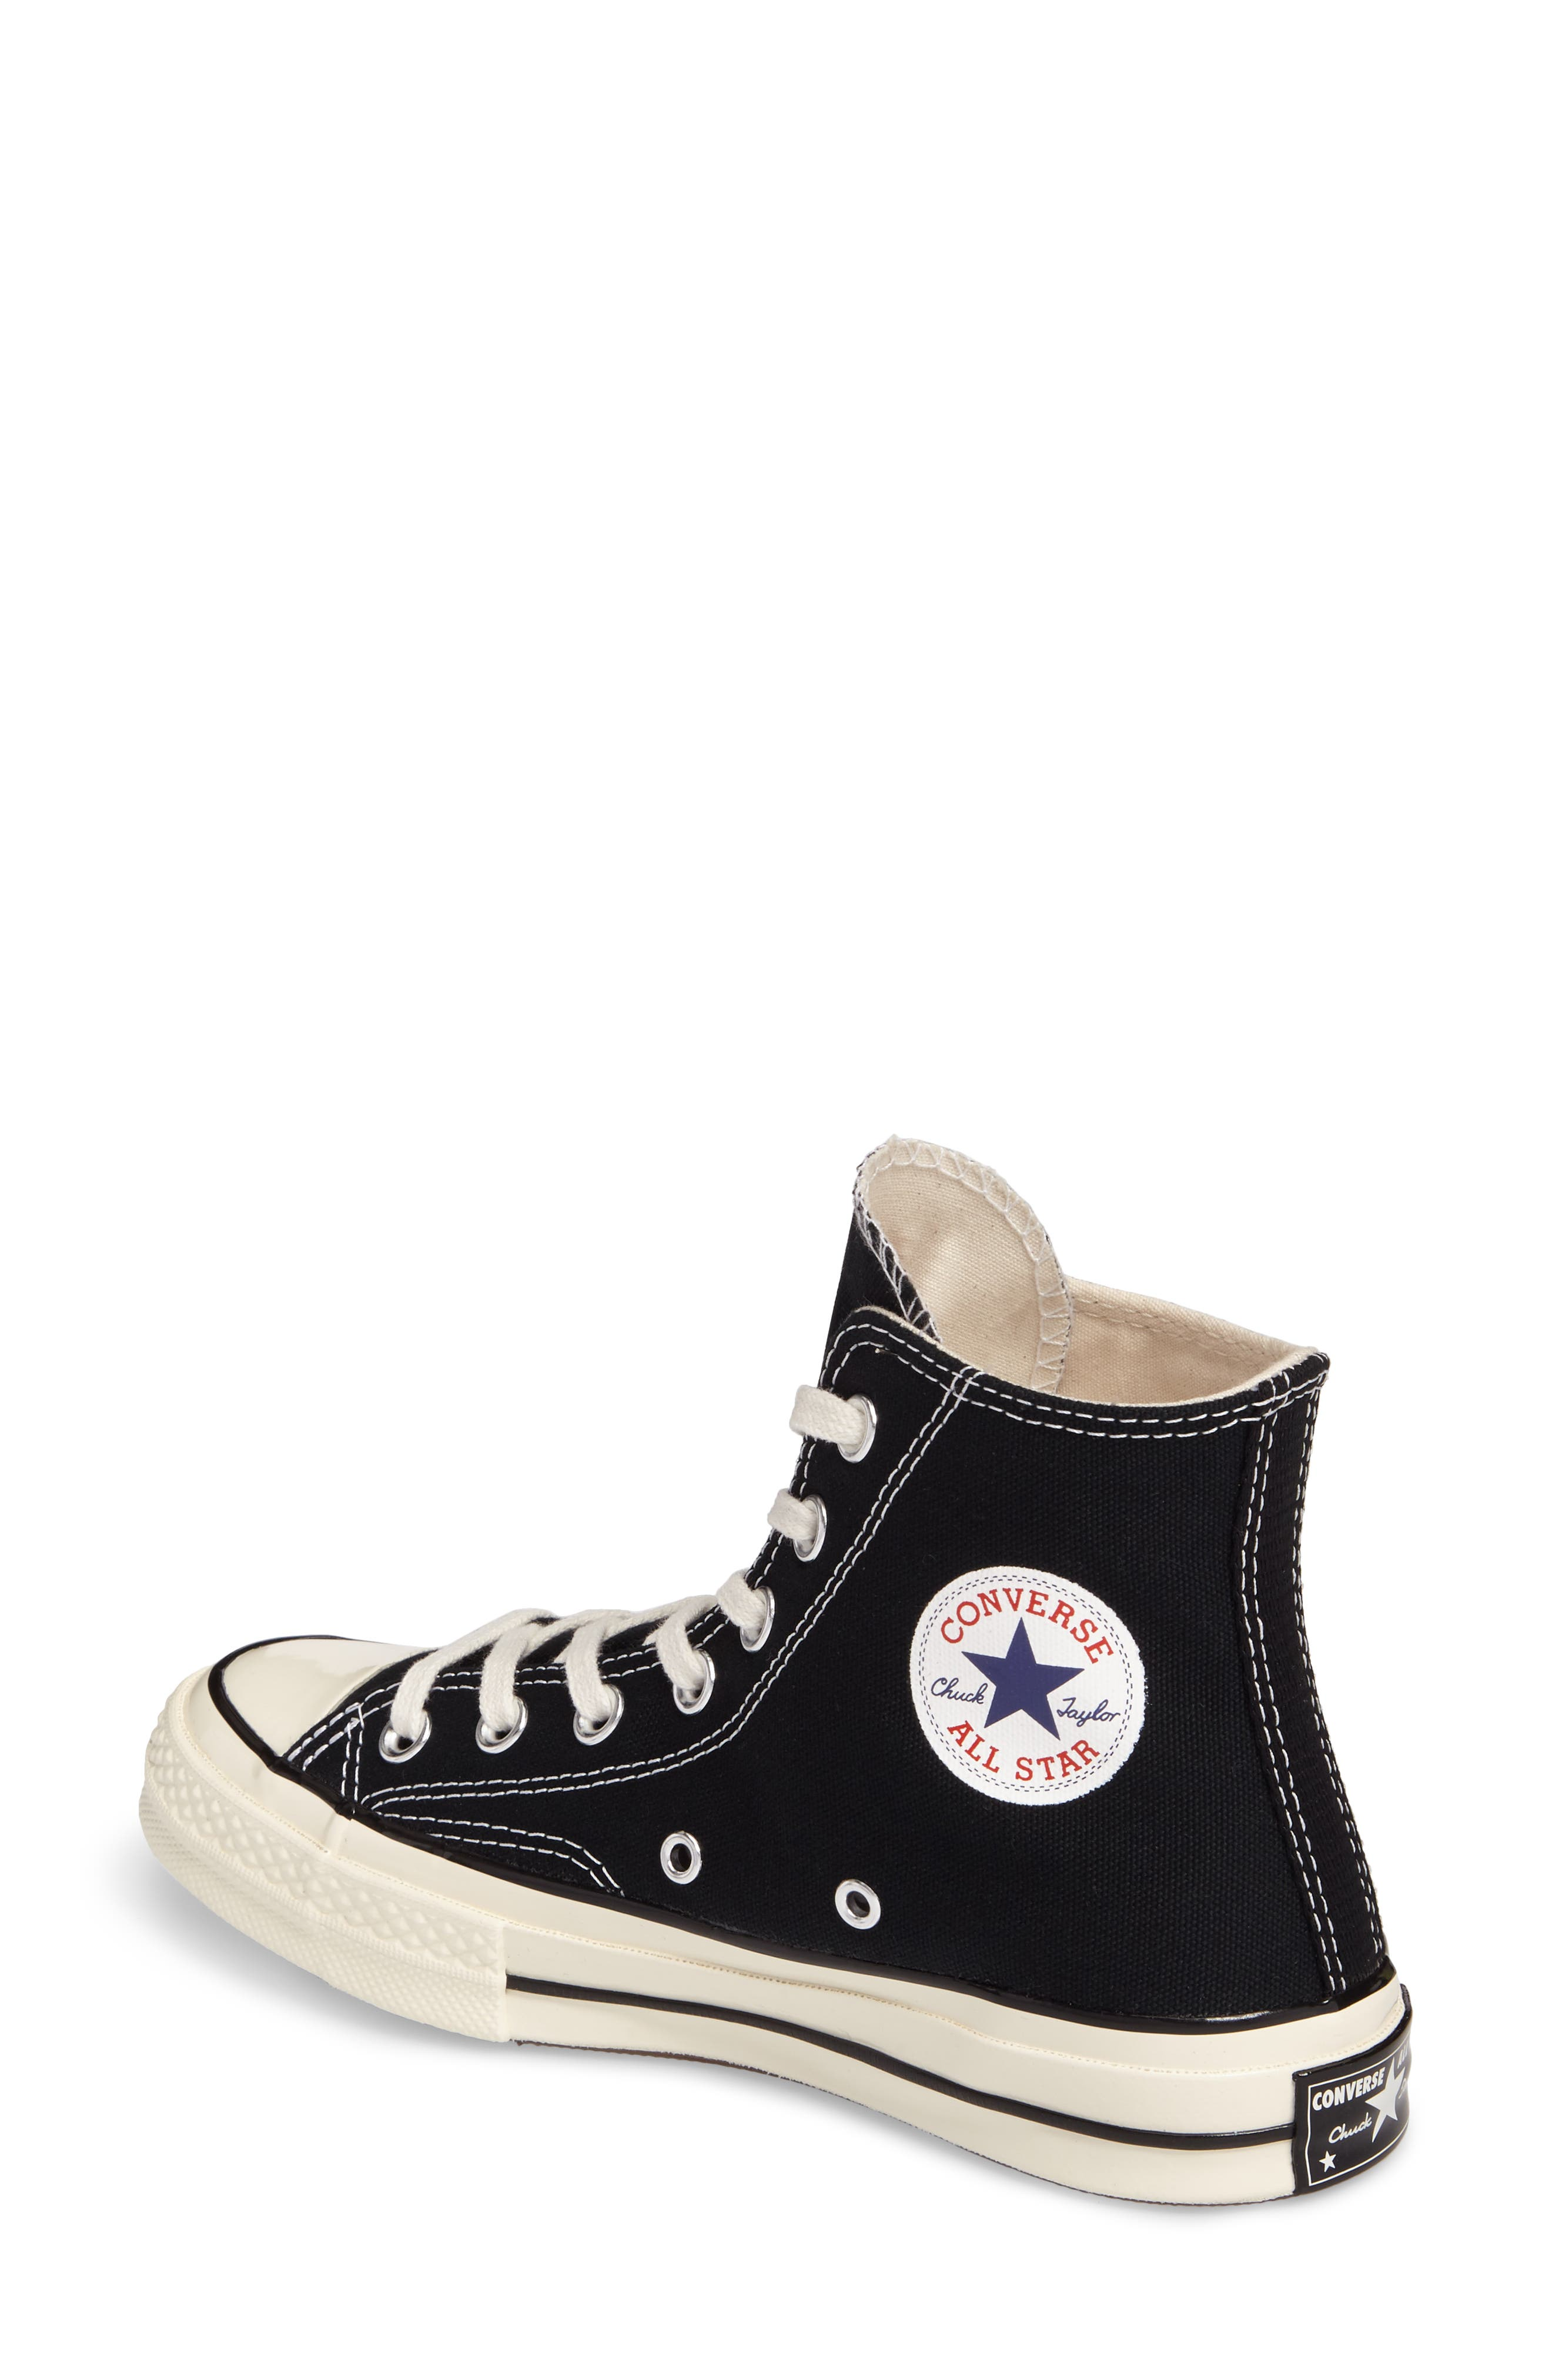 Chuck Taylor<sup>®</sup> All Star<sup>®</sup> '70 High Top Sneaker,                             Alternate thumbnail 2, color,                             001